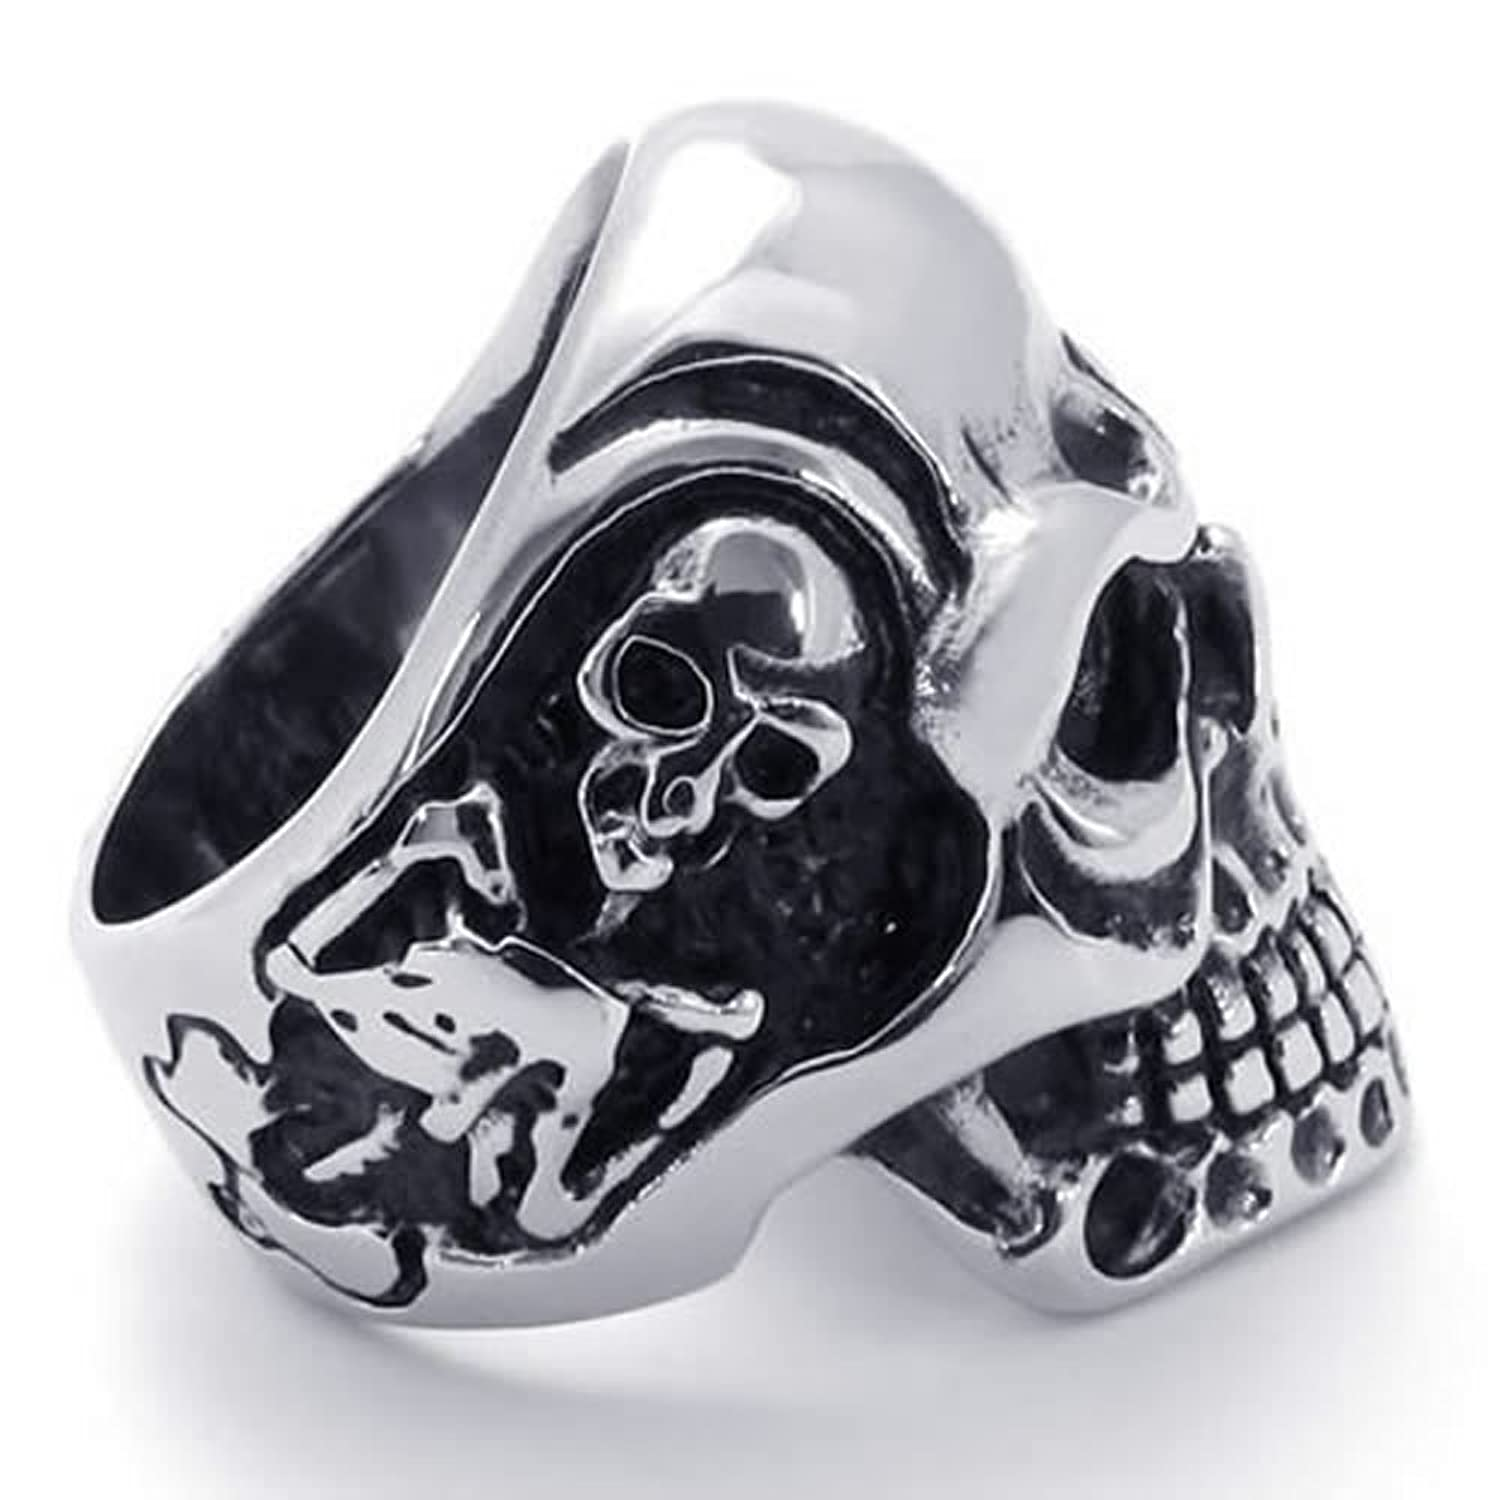 shop mens size men redcolourful stainless sg finger steel fashion lazada rings punk creative unique skeleton buy watches ring retro